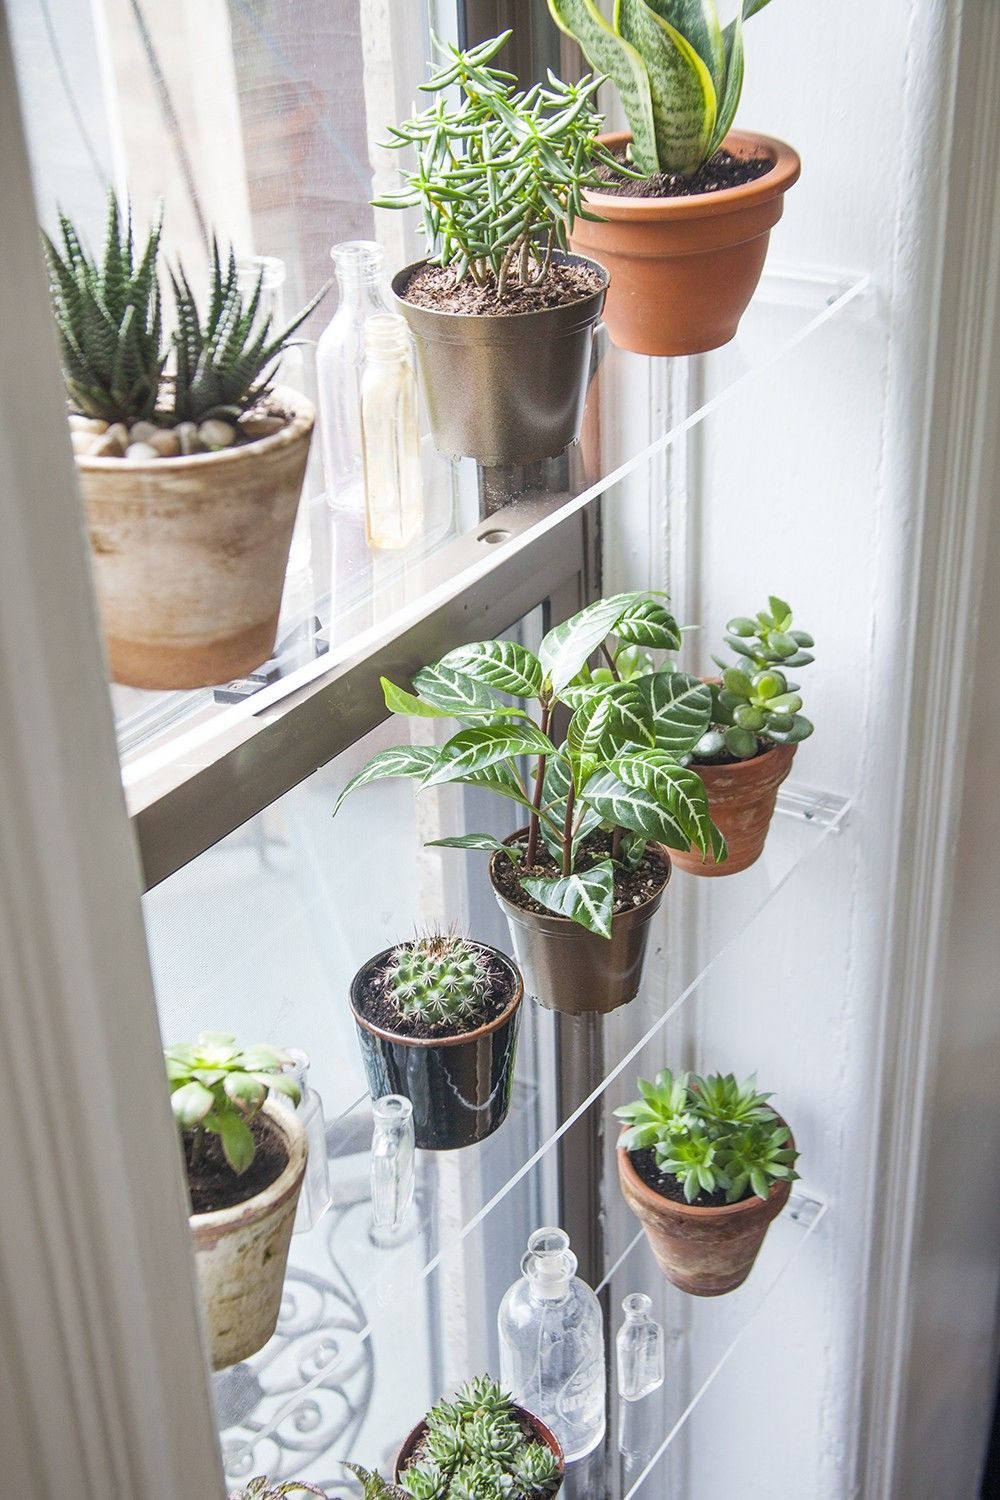 30 Succulent Plant Ideas For Decorating Small Apartment The Urban Interior Window Plants Indoor Gardening Diy Window Shelves